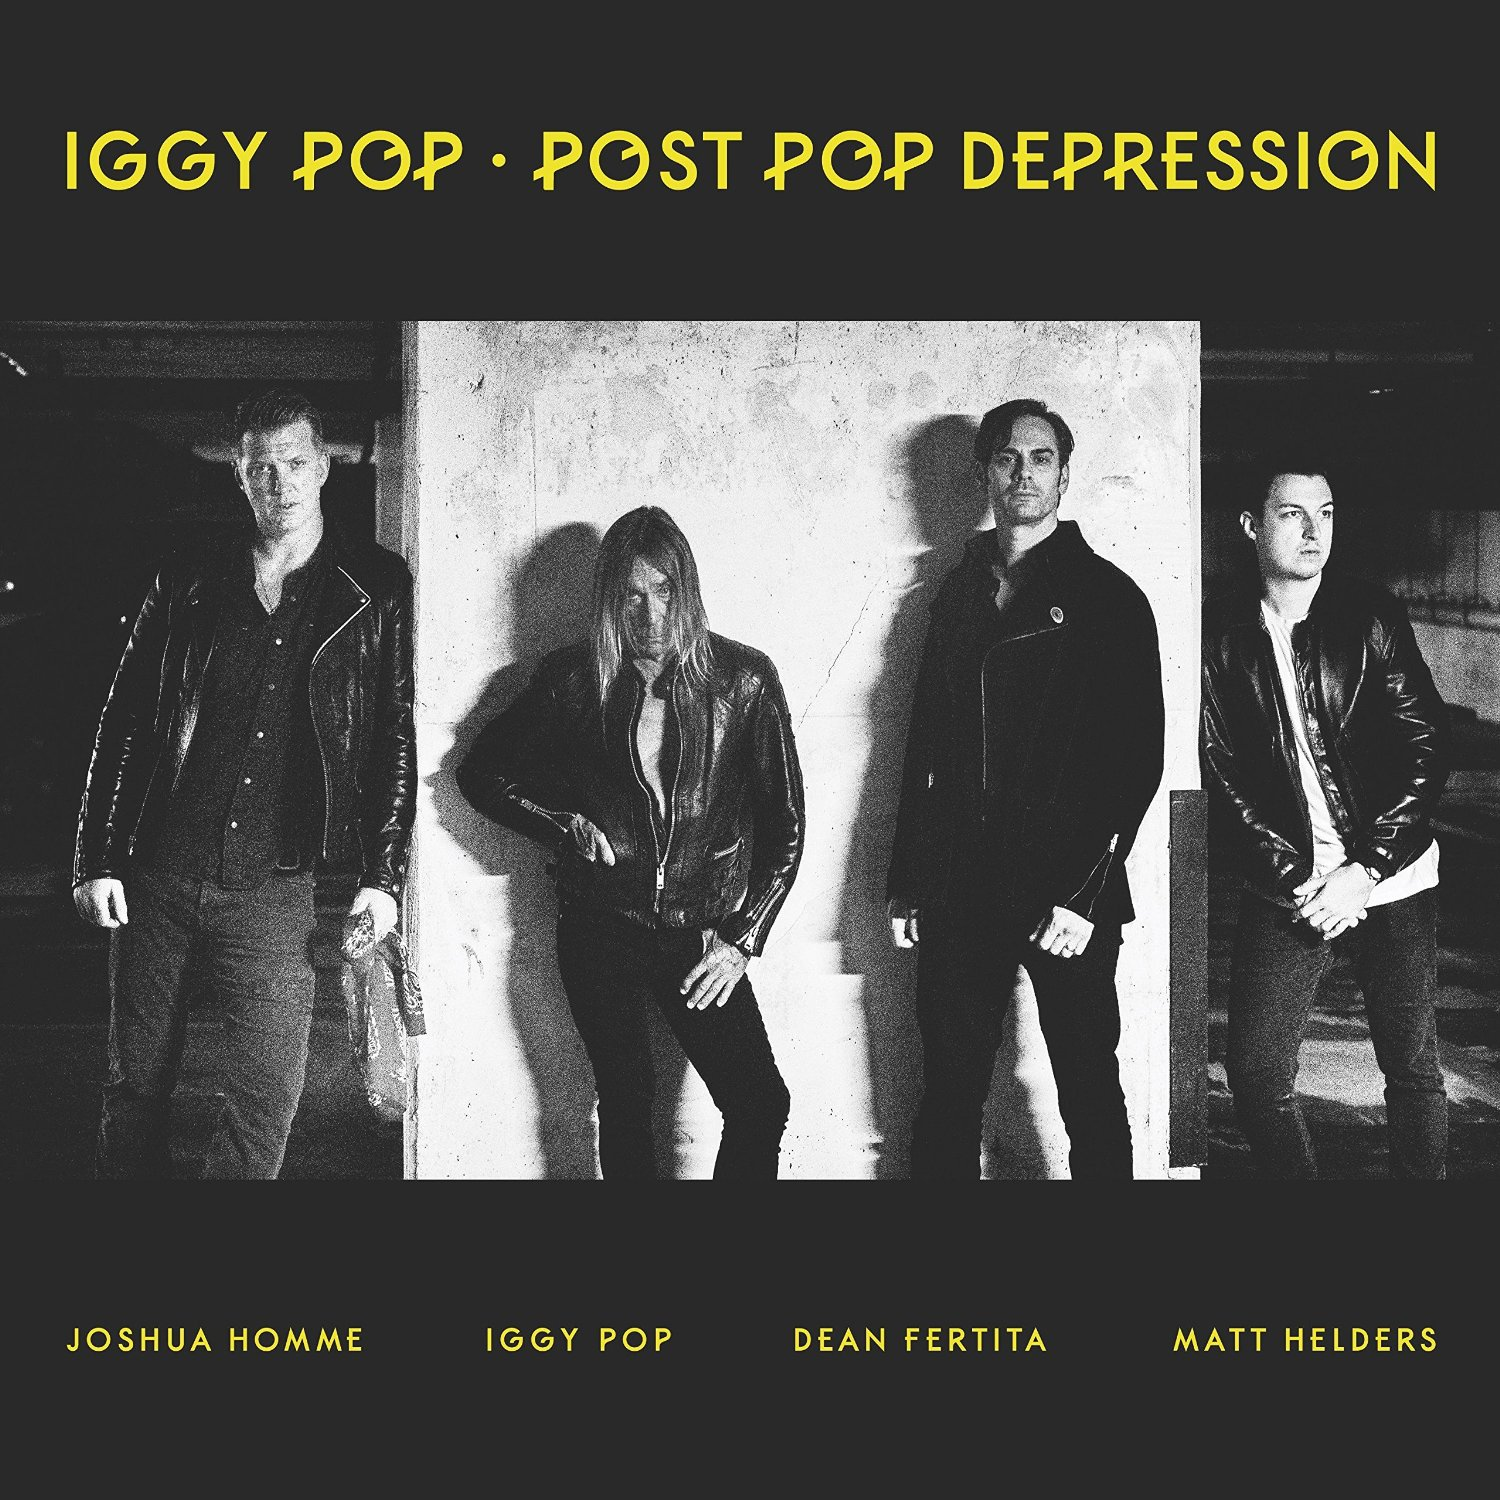 post-pop-depression-iggy-pop-josh-homme